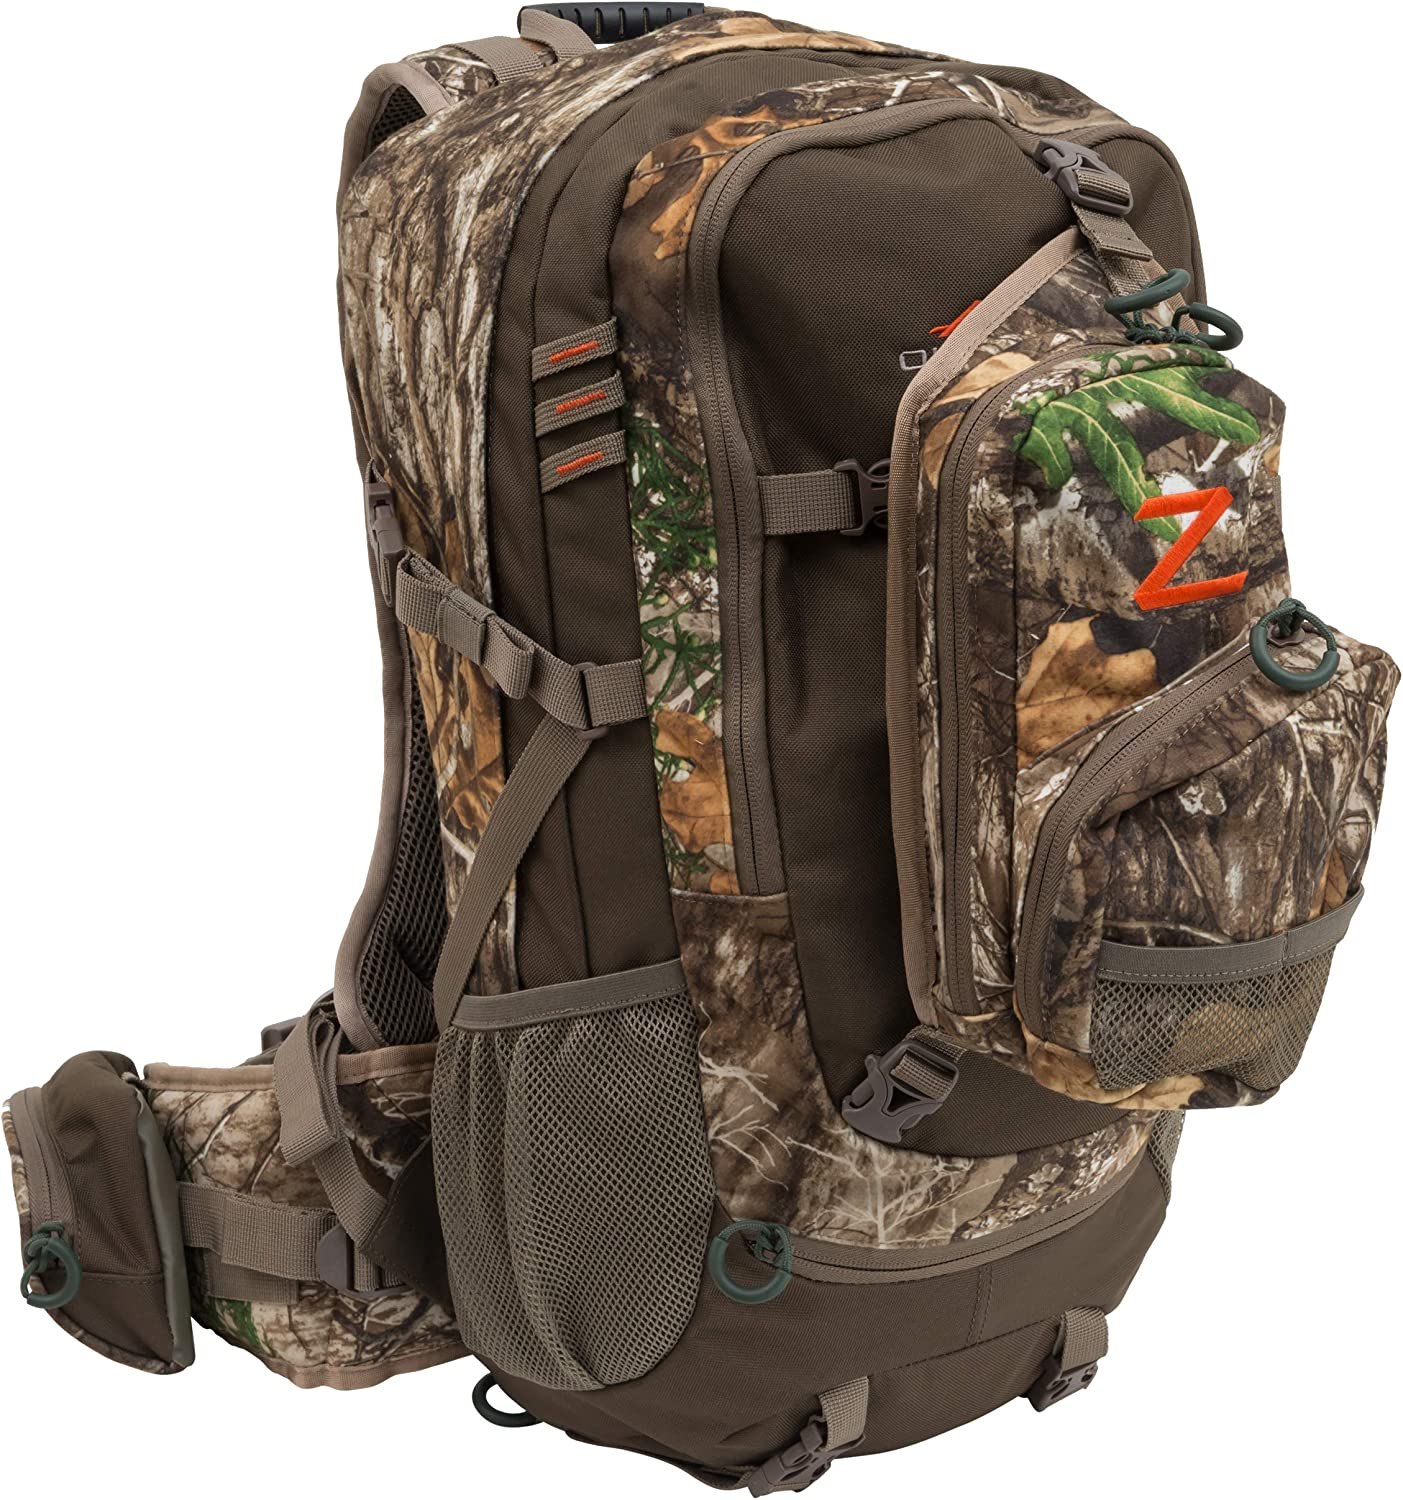 ALPS OutdoorZ Crossfire Hunting Pack